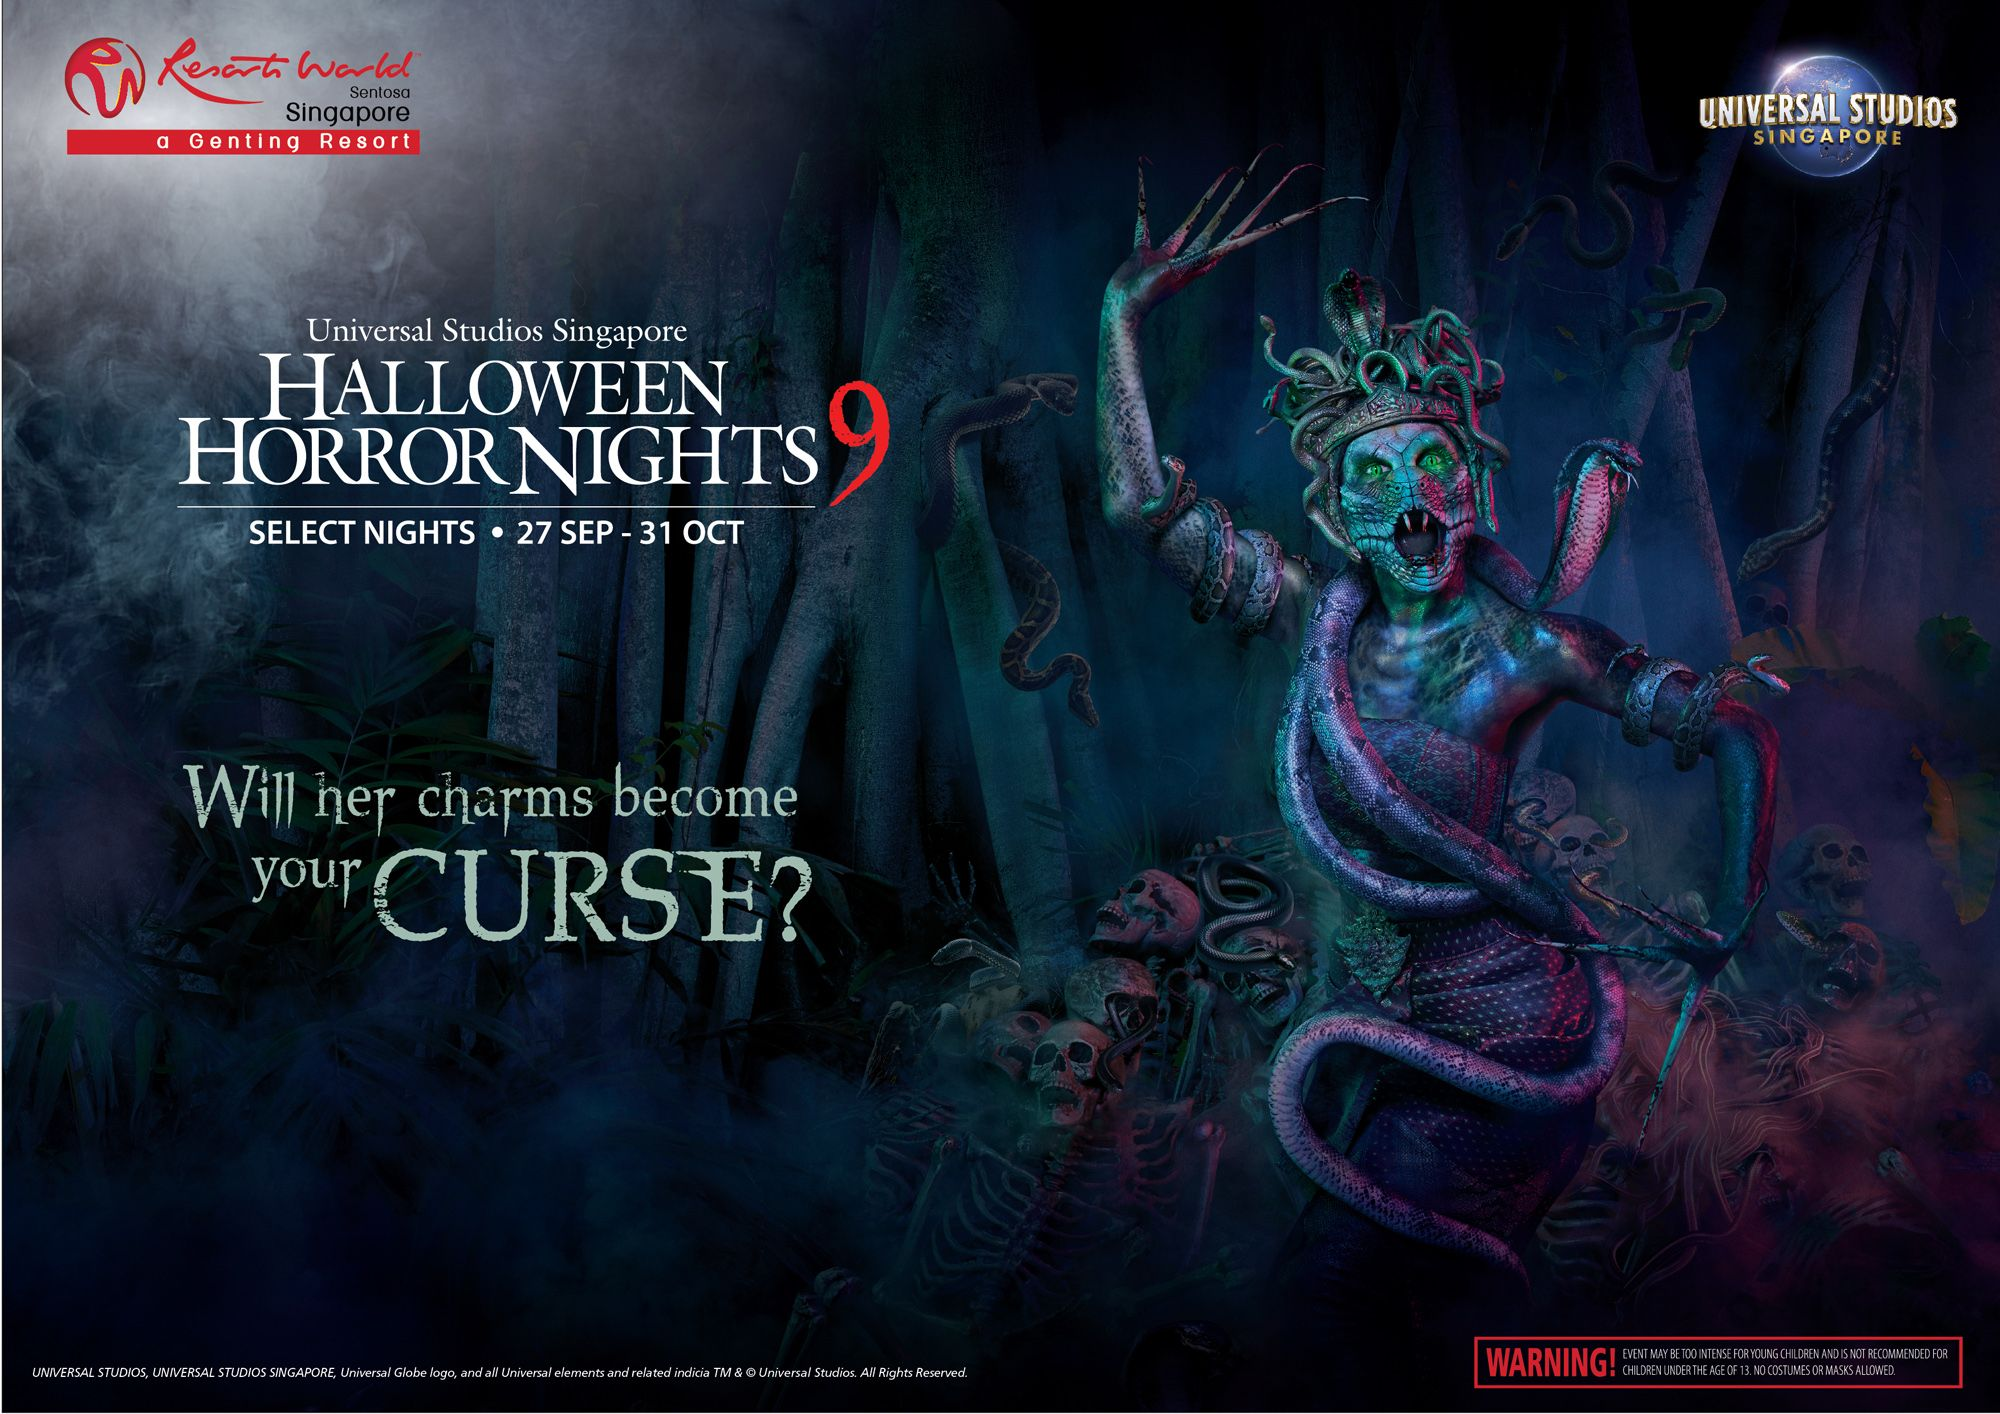 Universal Studios Singapore's Halloween Horror Nights 2019